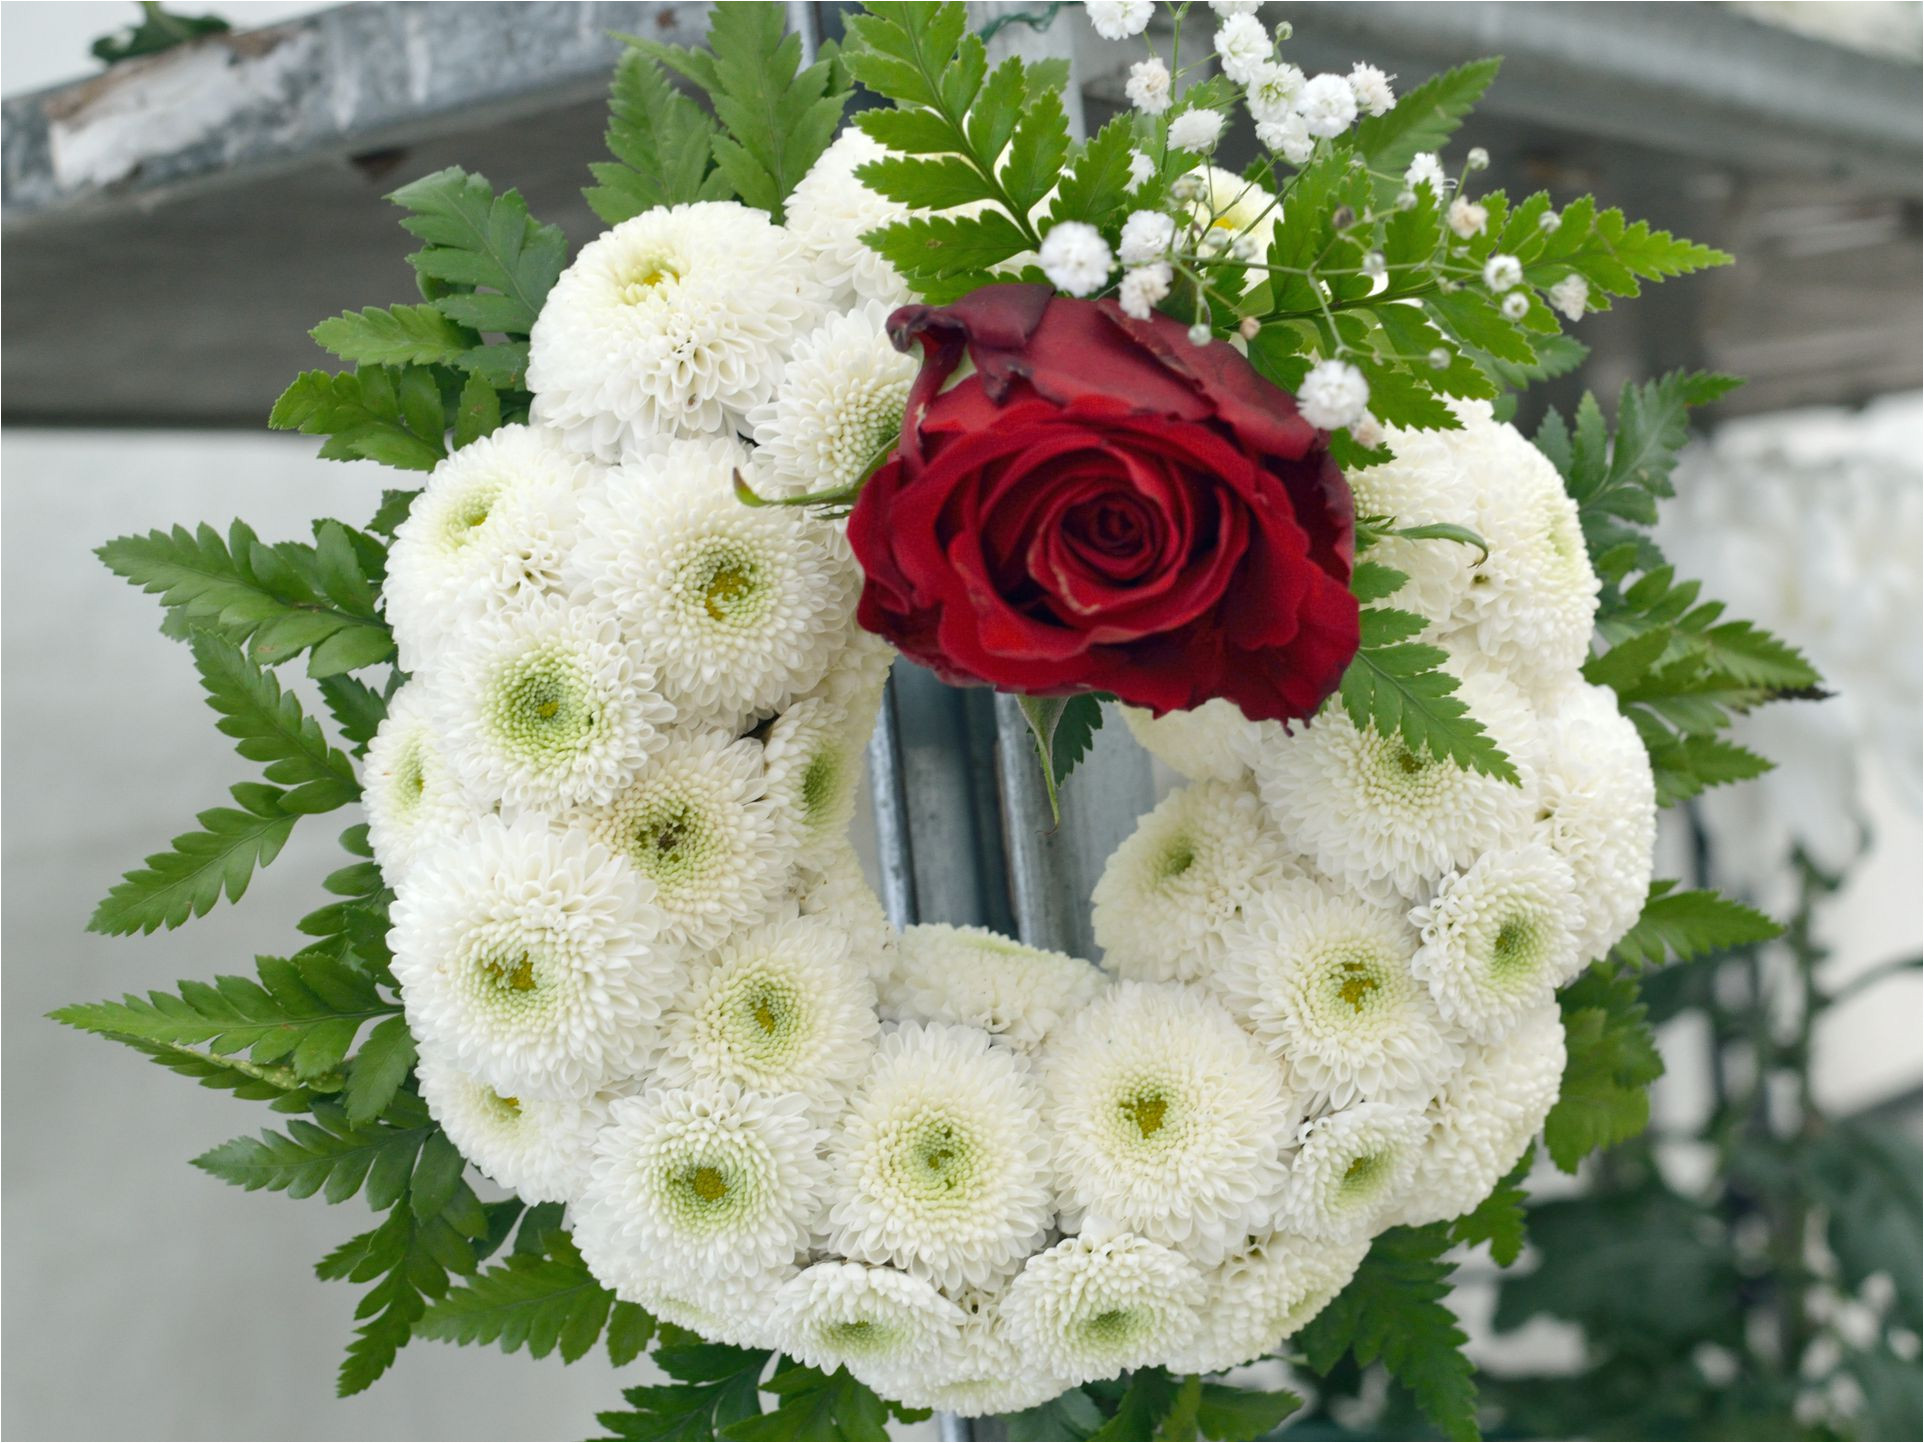 funeralwreath gettyimages 591655301 5a3edccc5b6e240037ffc773 jpg